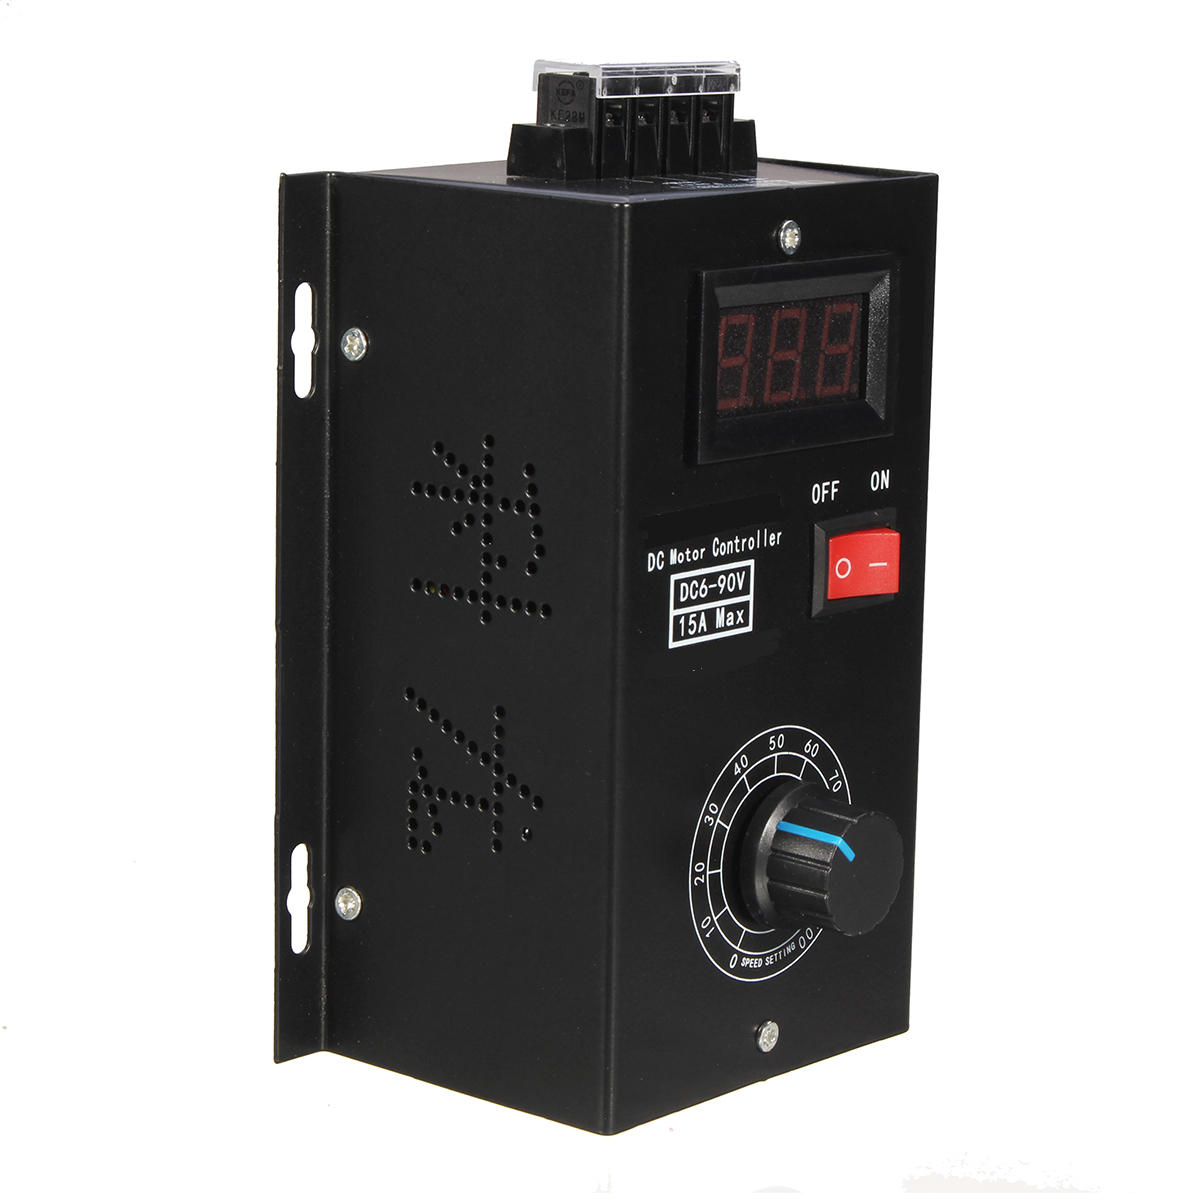 Dc Motor 6-60v Pwm Dc Motor Speed Controller With Digital Display Panel Button Governor